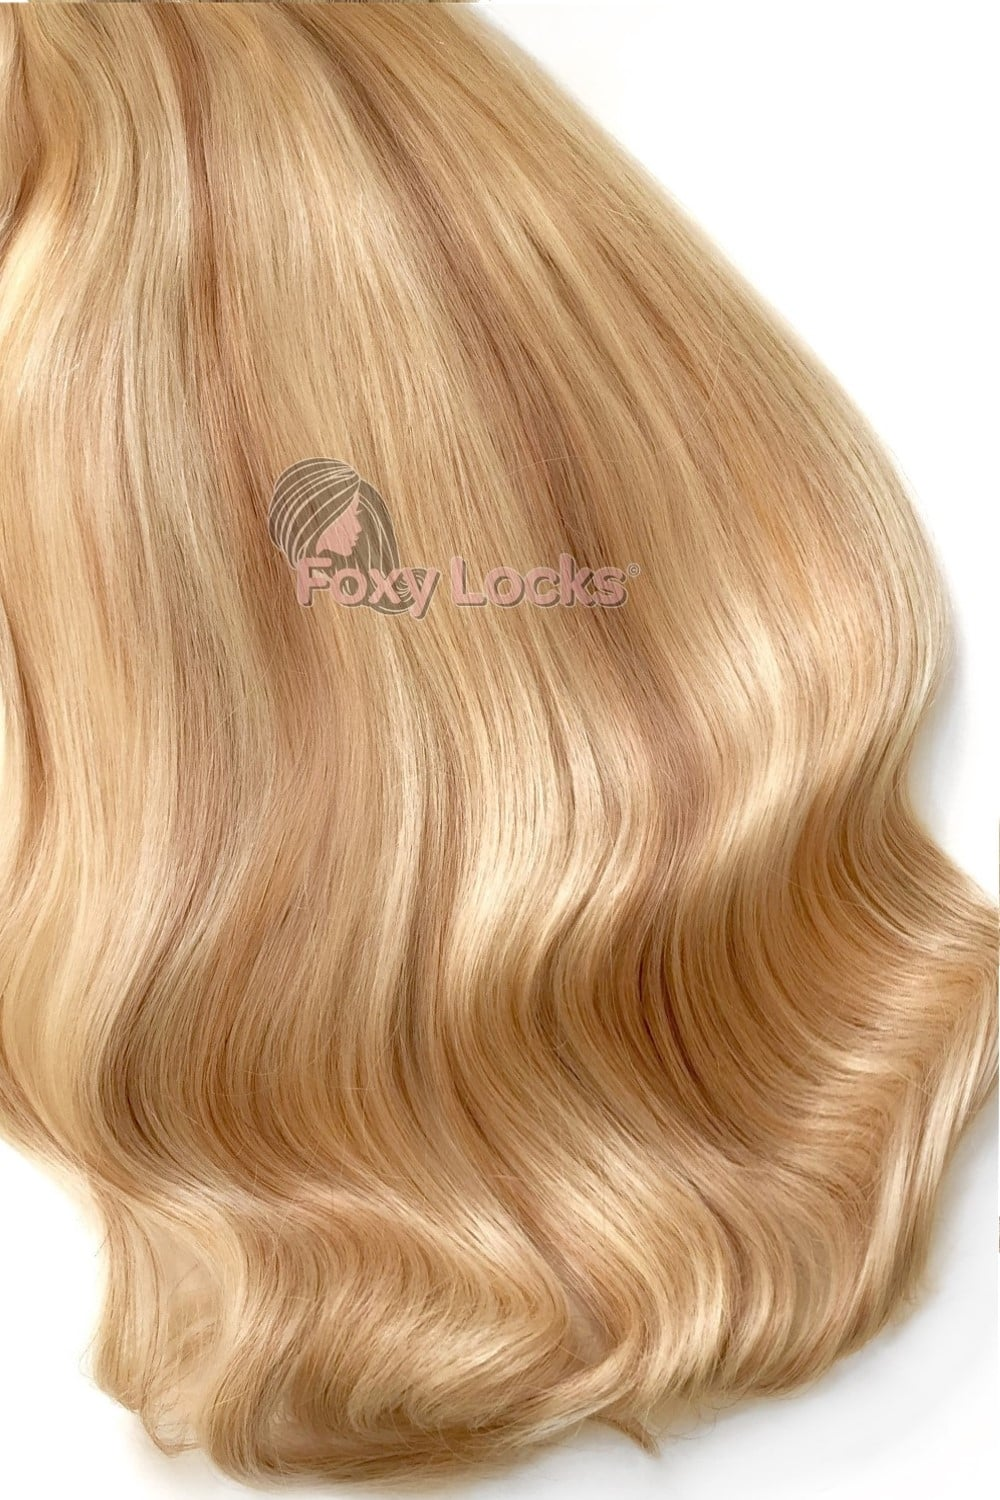 Blonde luxurious 24 clip in human hair extensions 280g sandy blonde luxurious 24 clip in human hair extensions 280g pmusecretfo Image collections